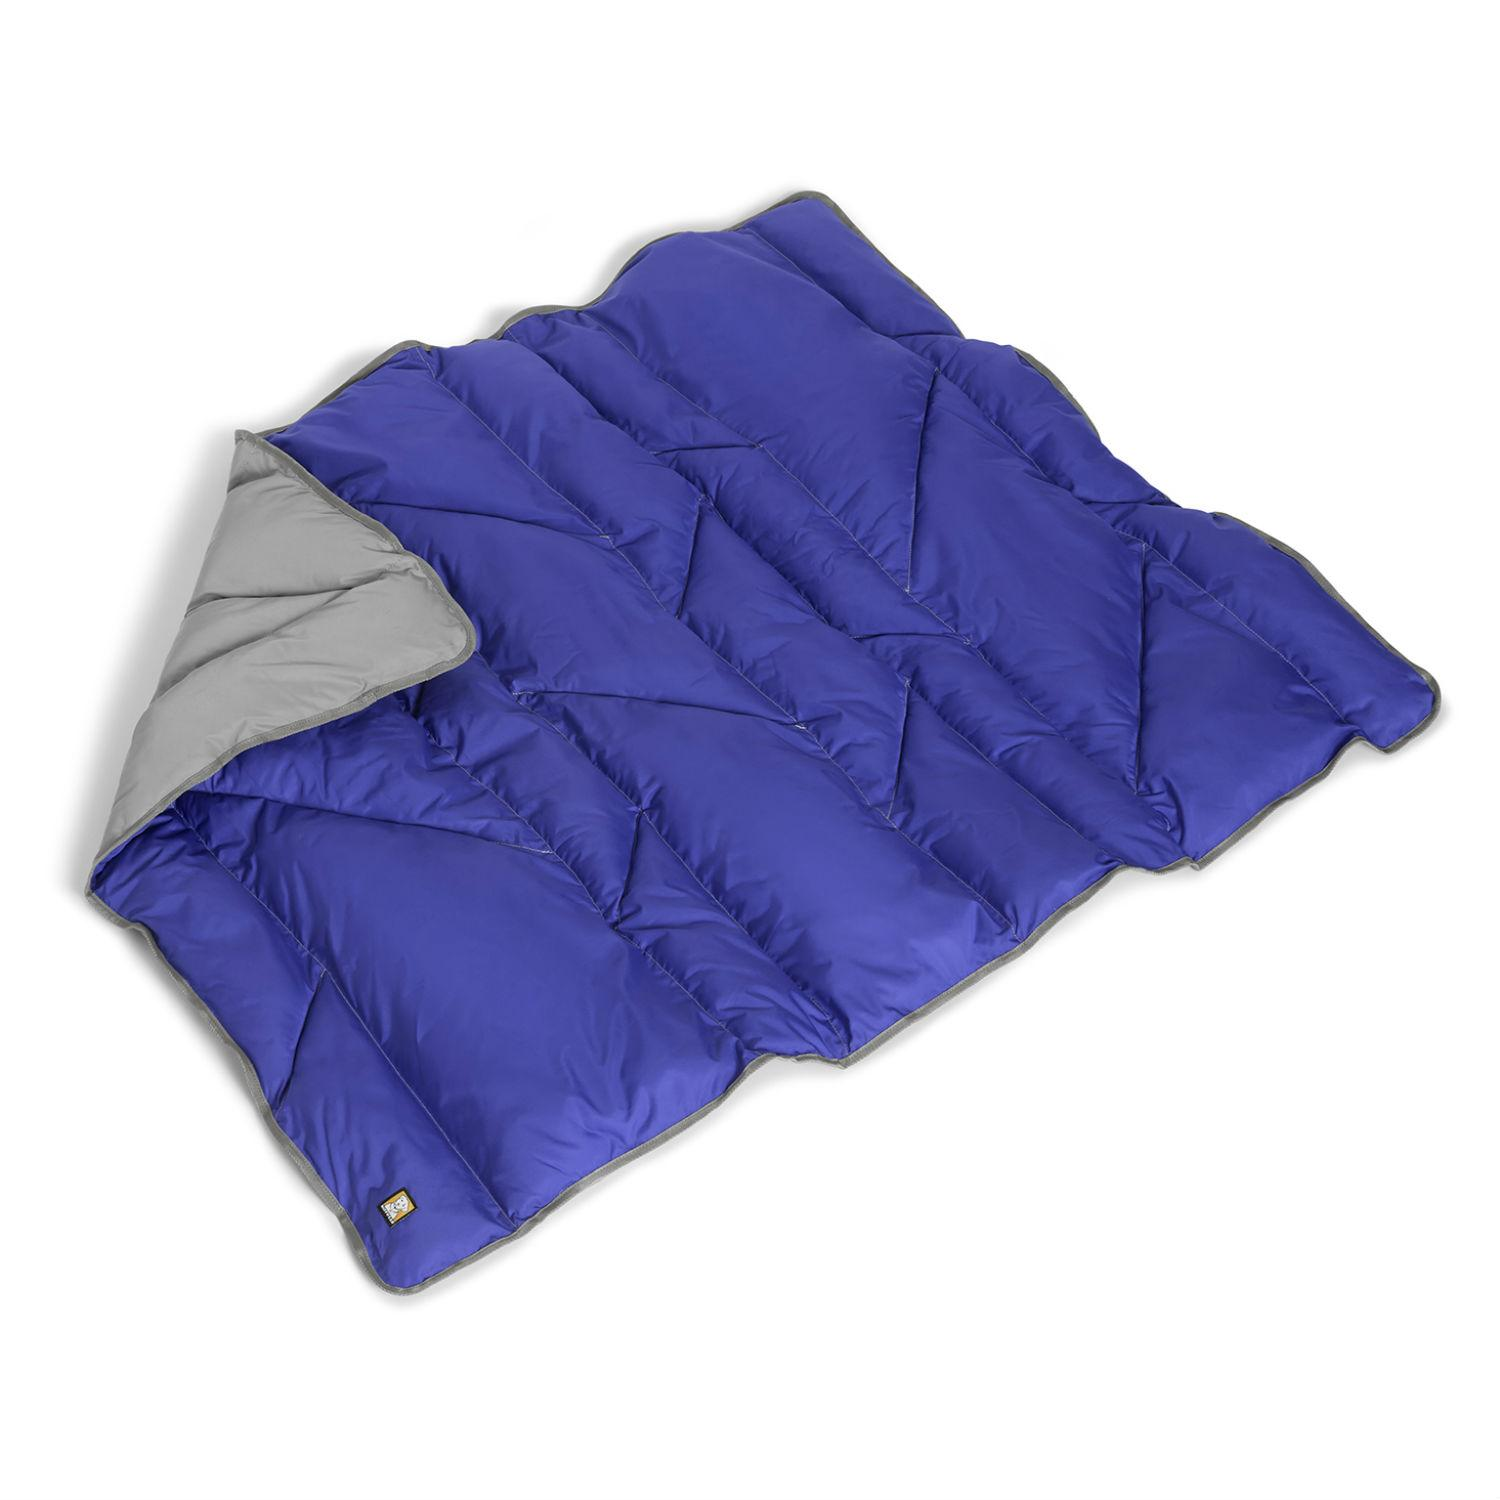 Clear Lake Dog Blanket by RuffWear - Huckleberry Blue